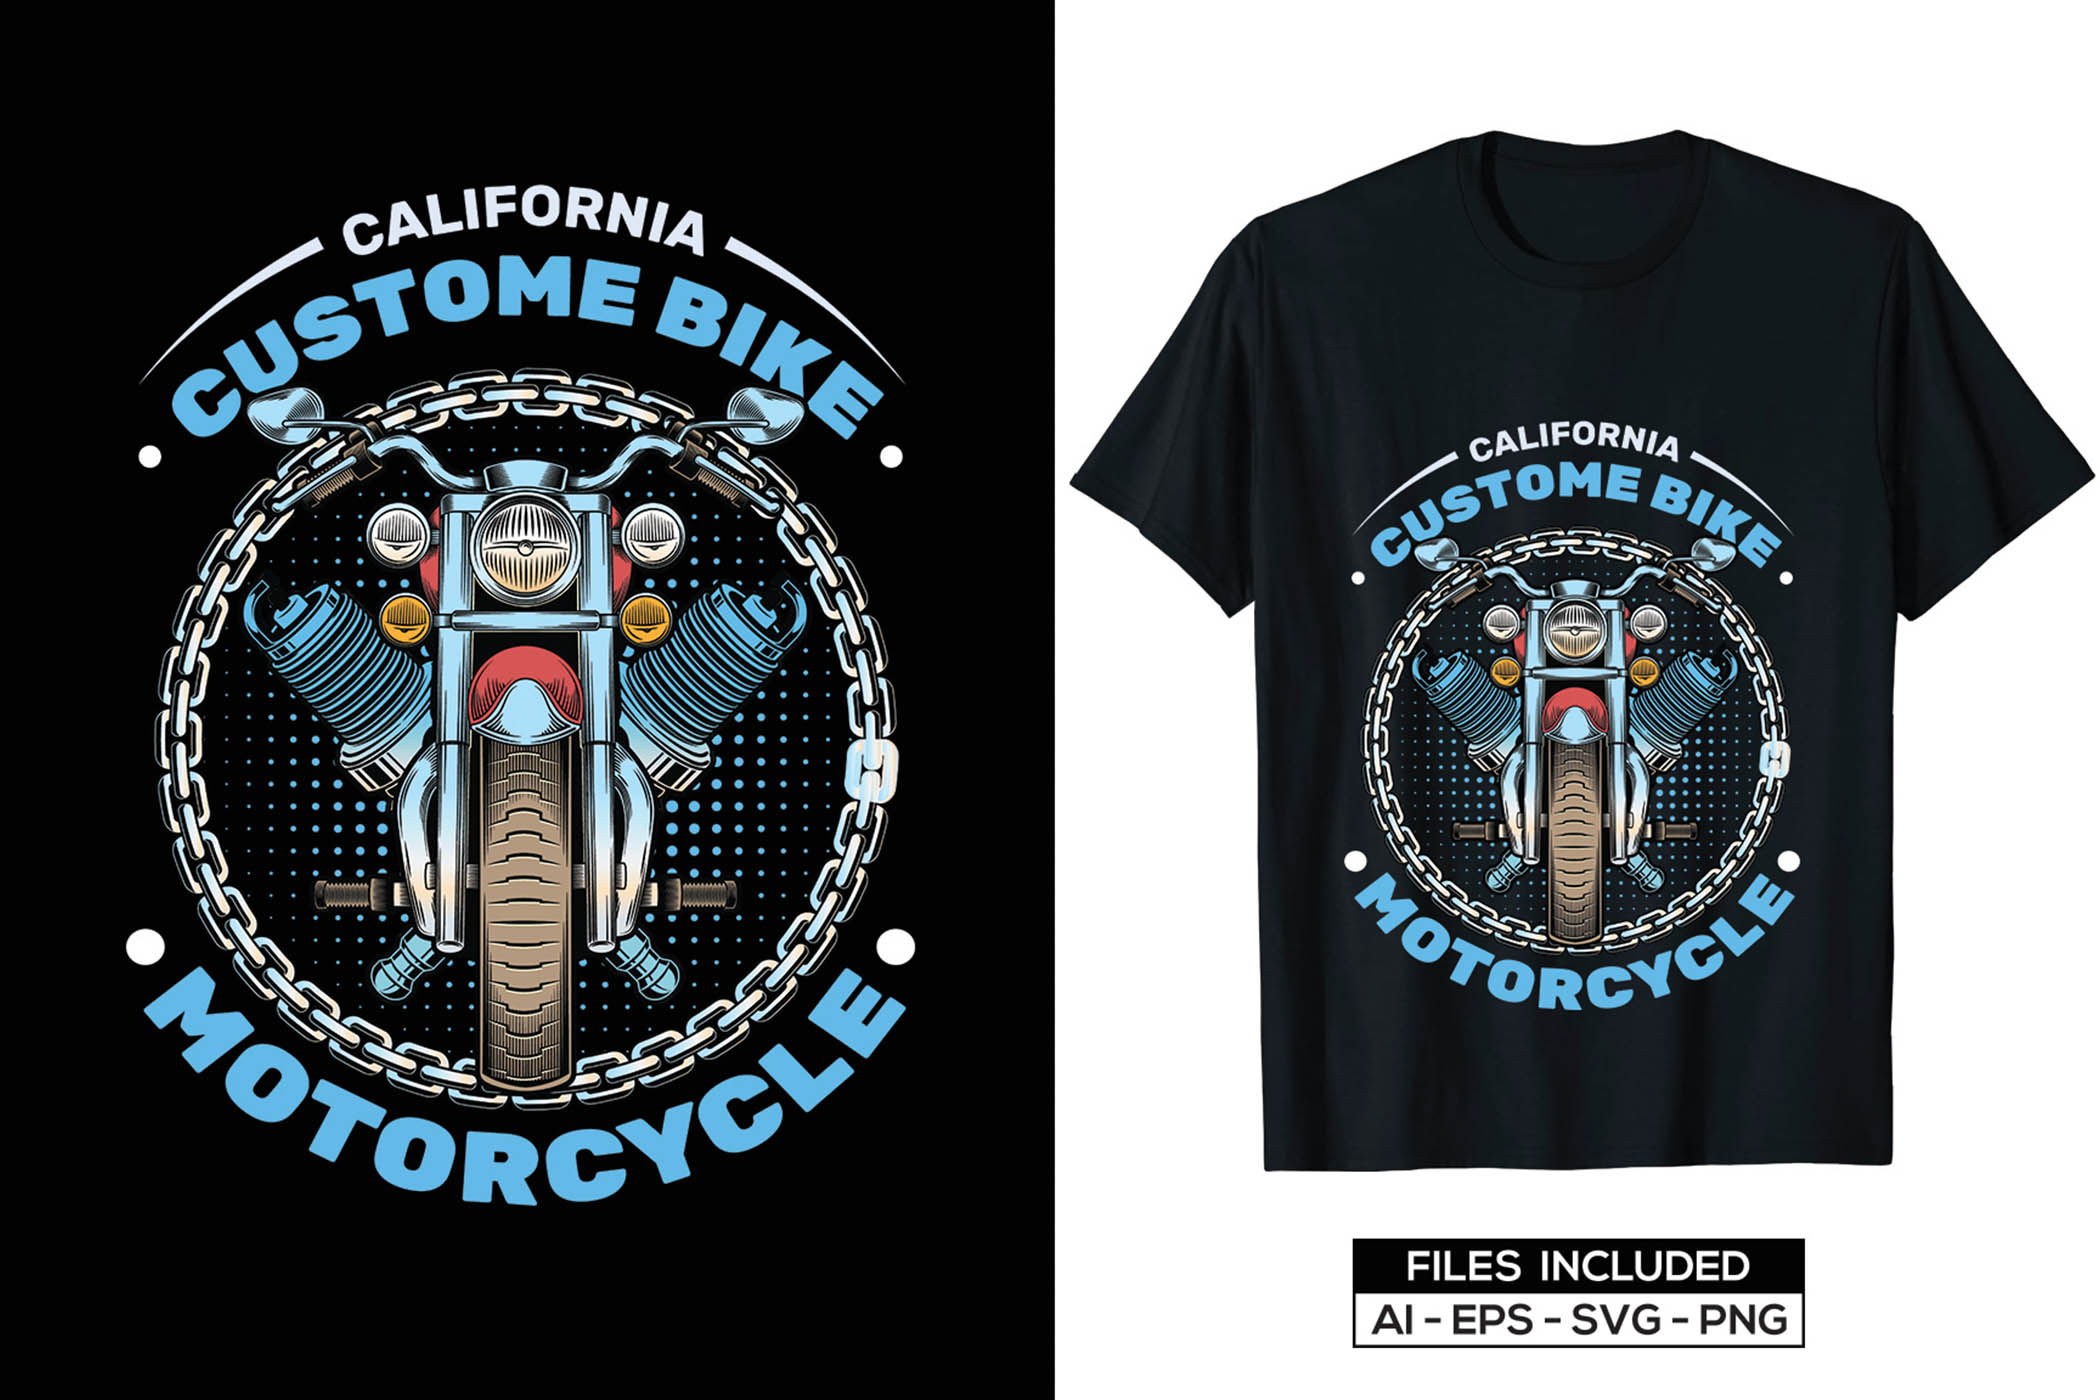 It's a California t-shirt style with blue motorcycle illustration.